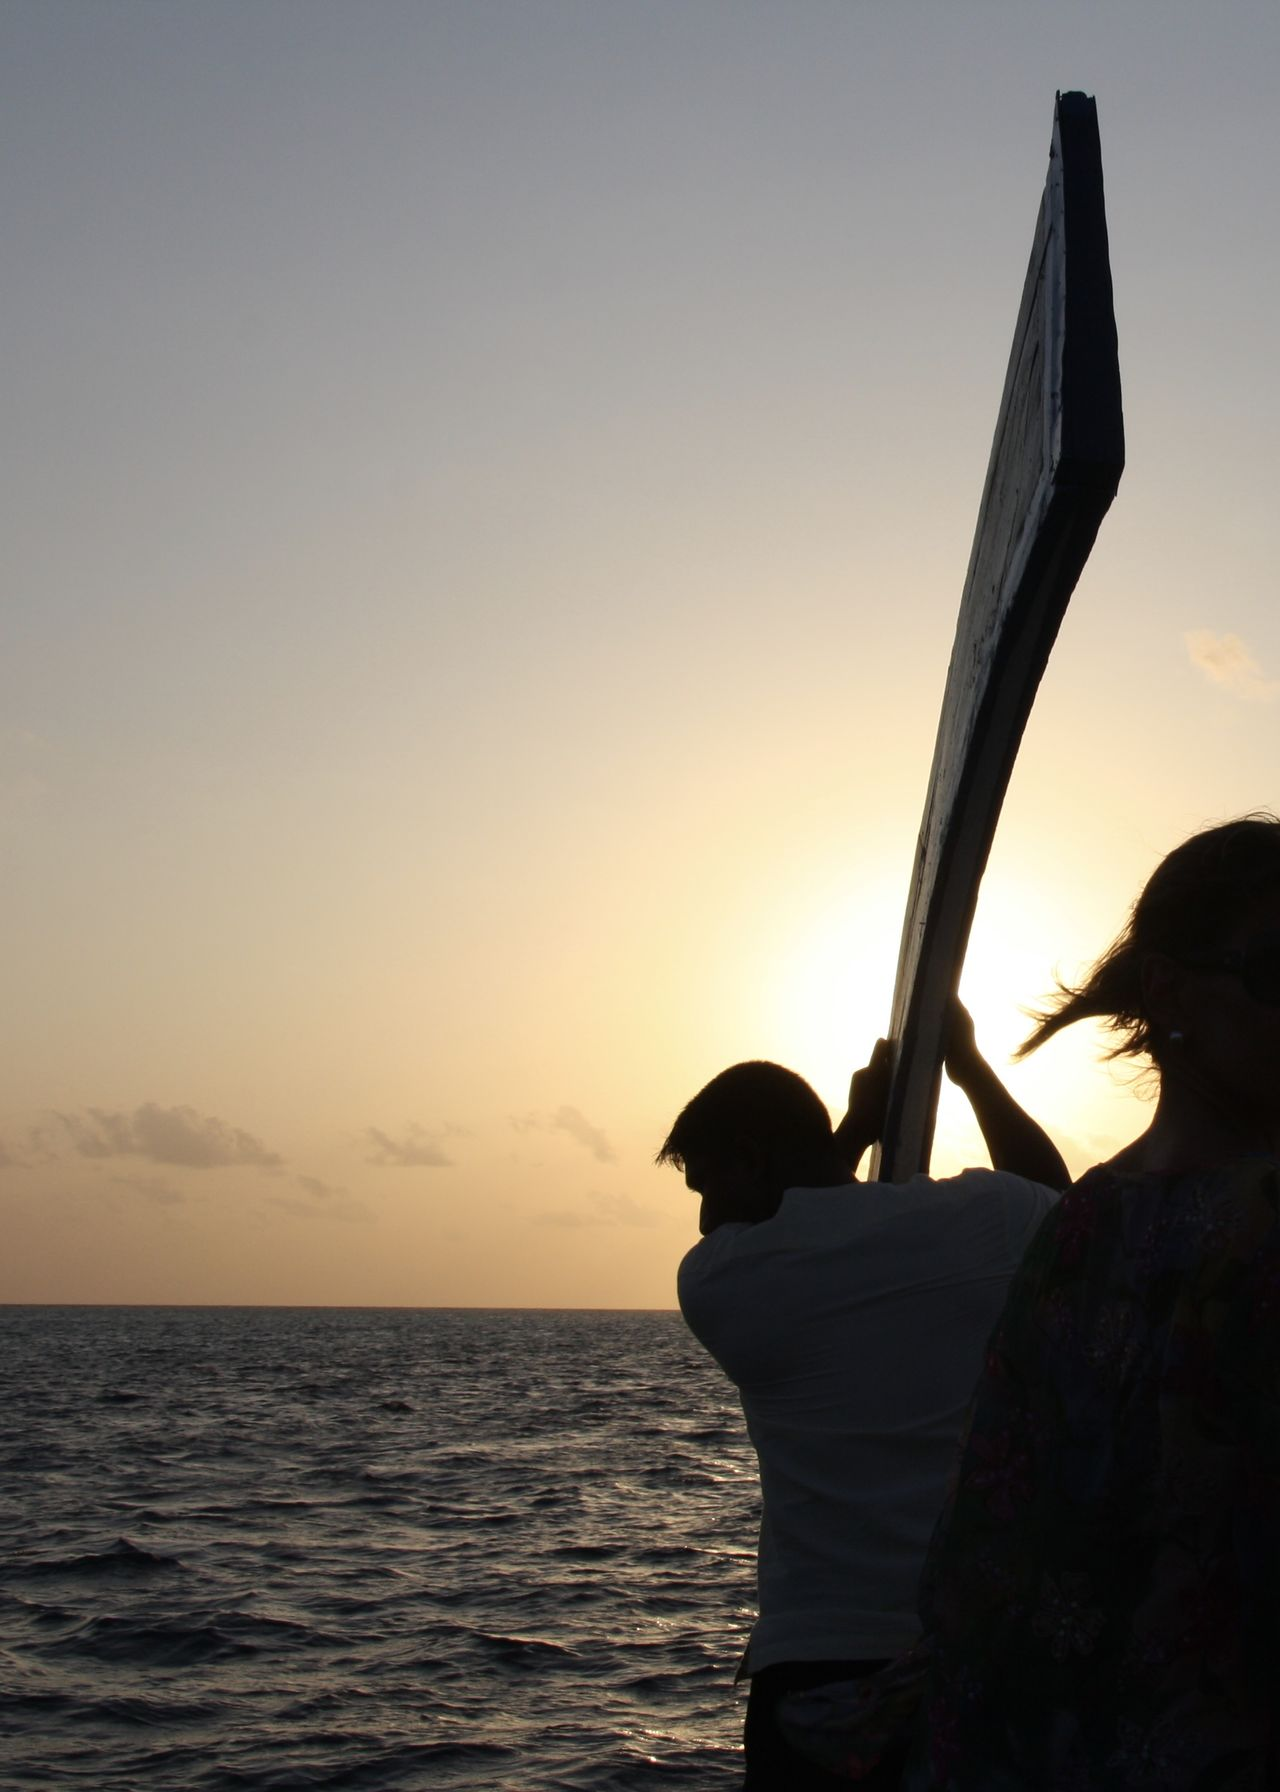 Silhouettes of Male and Female on Dhoni Boat during Sunset, Maldives Adults Only Beach Beauty In Nature Boat Clouds Colors Dhoni Dreaming Goldenhour Horizon Over Water Idyllic Indian Ocean Love Maldives Nature Outdoors Scenics Sea Silhouette Sky Sunset Sunset Silhouettes Traditional Two People Vacations